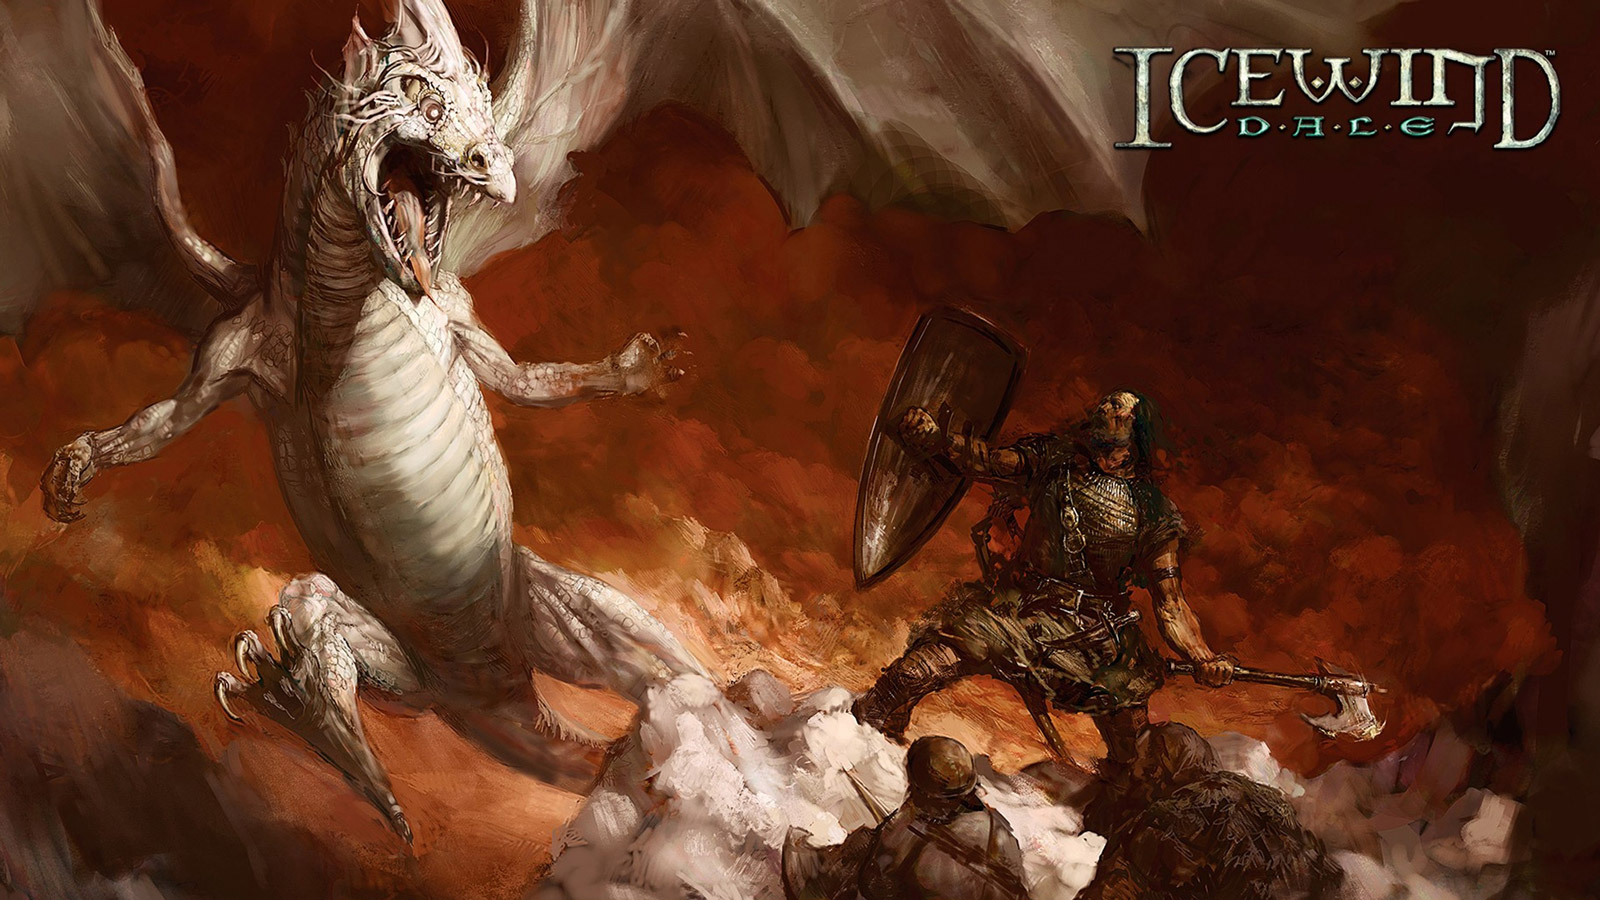 Free Icewind Dale Wallpaper in 1600x900